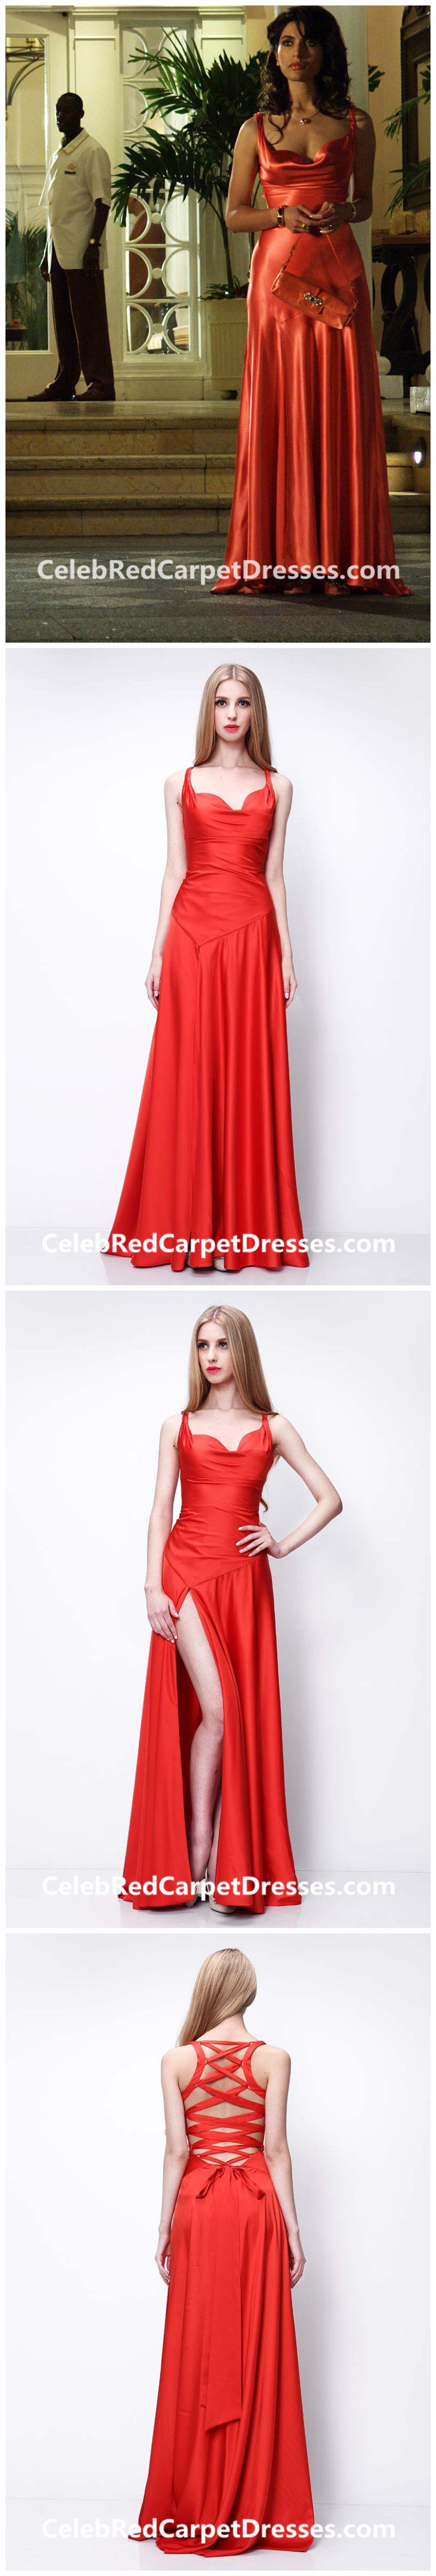 caterina murino slit dress red satin prom dress casino